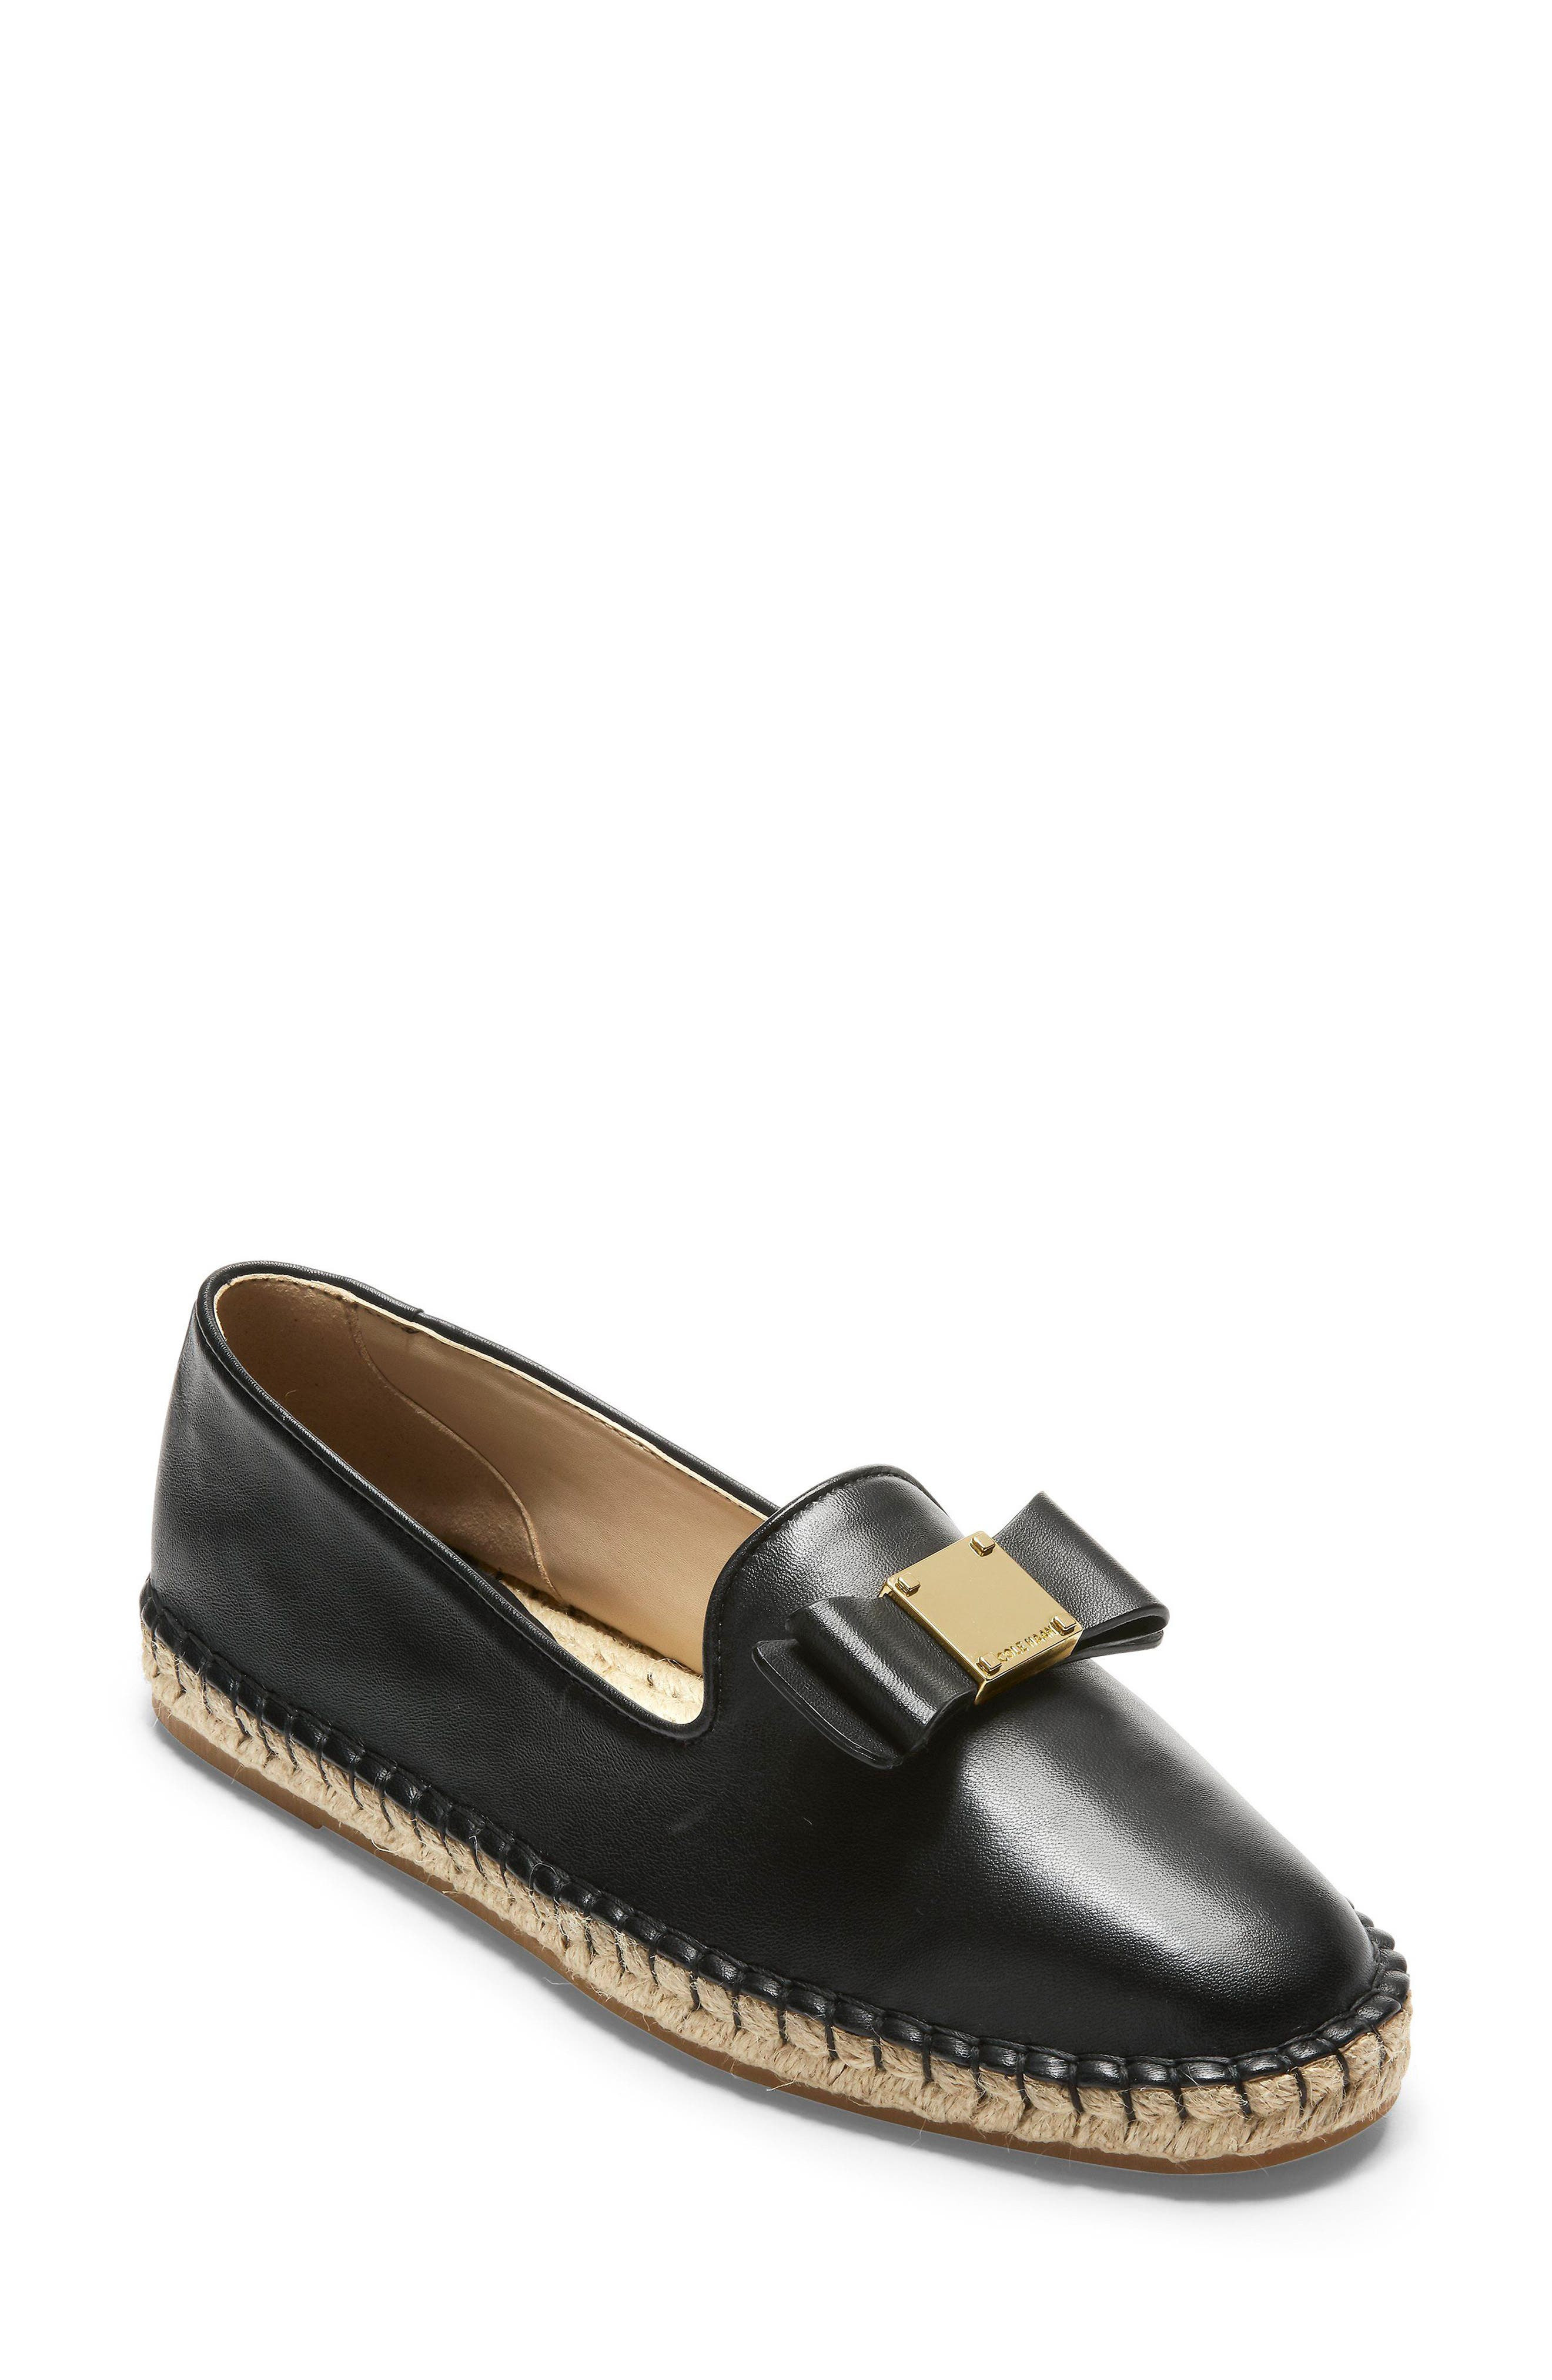 Tali Bow Espadrille Flat,                         Main,                         color, Black Leather